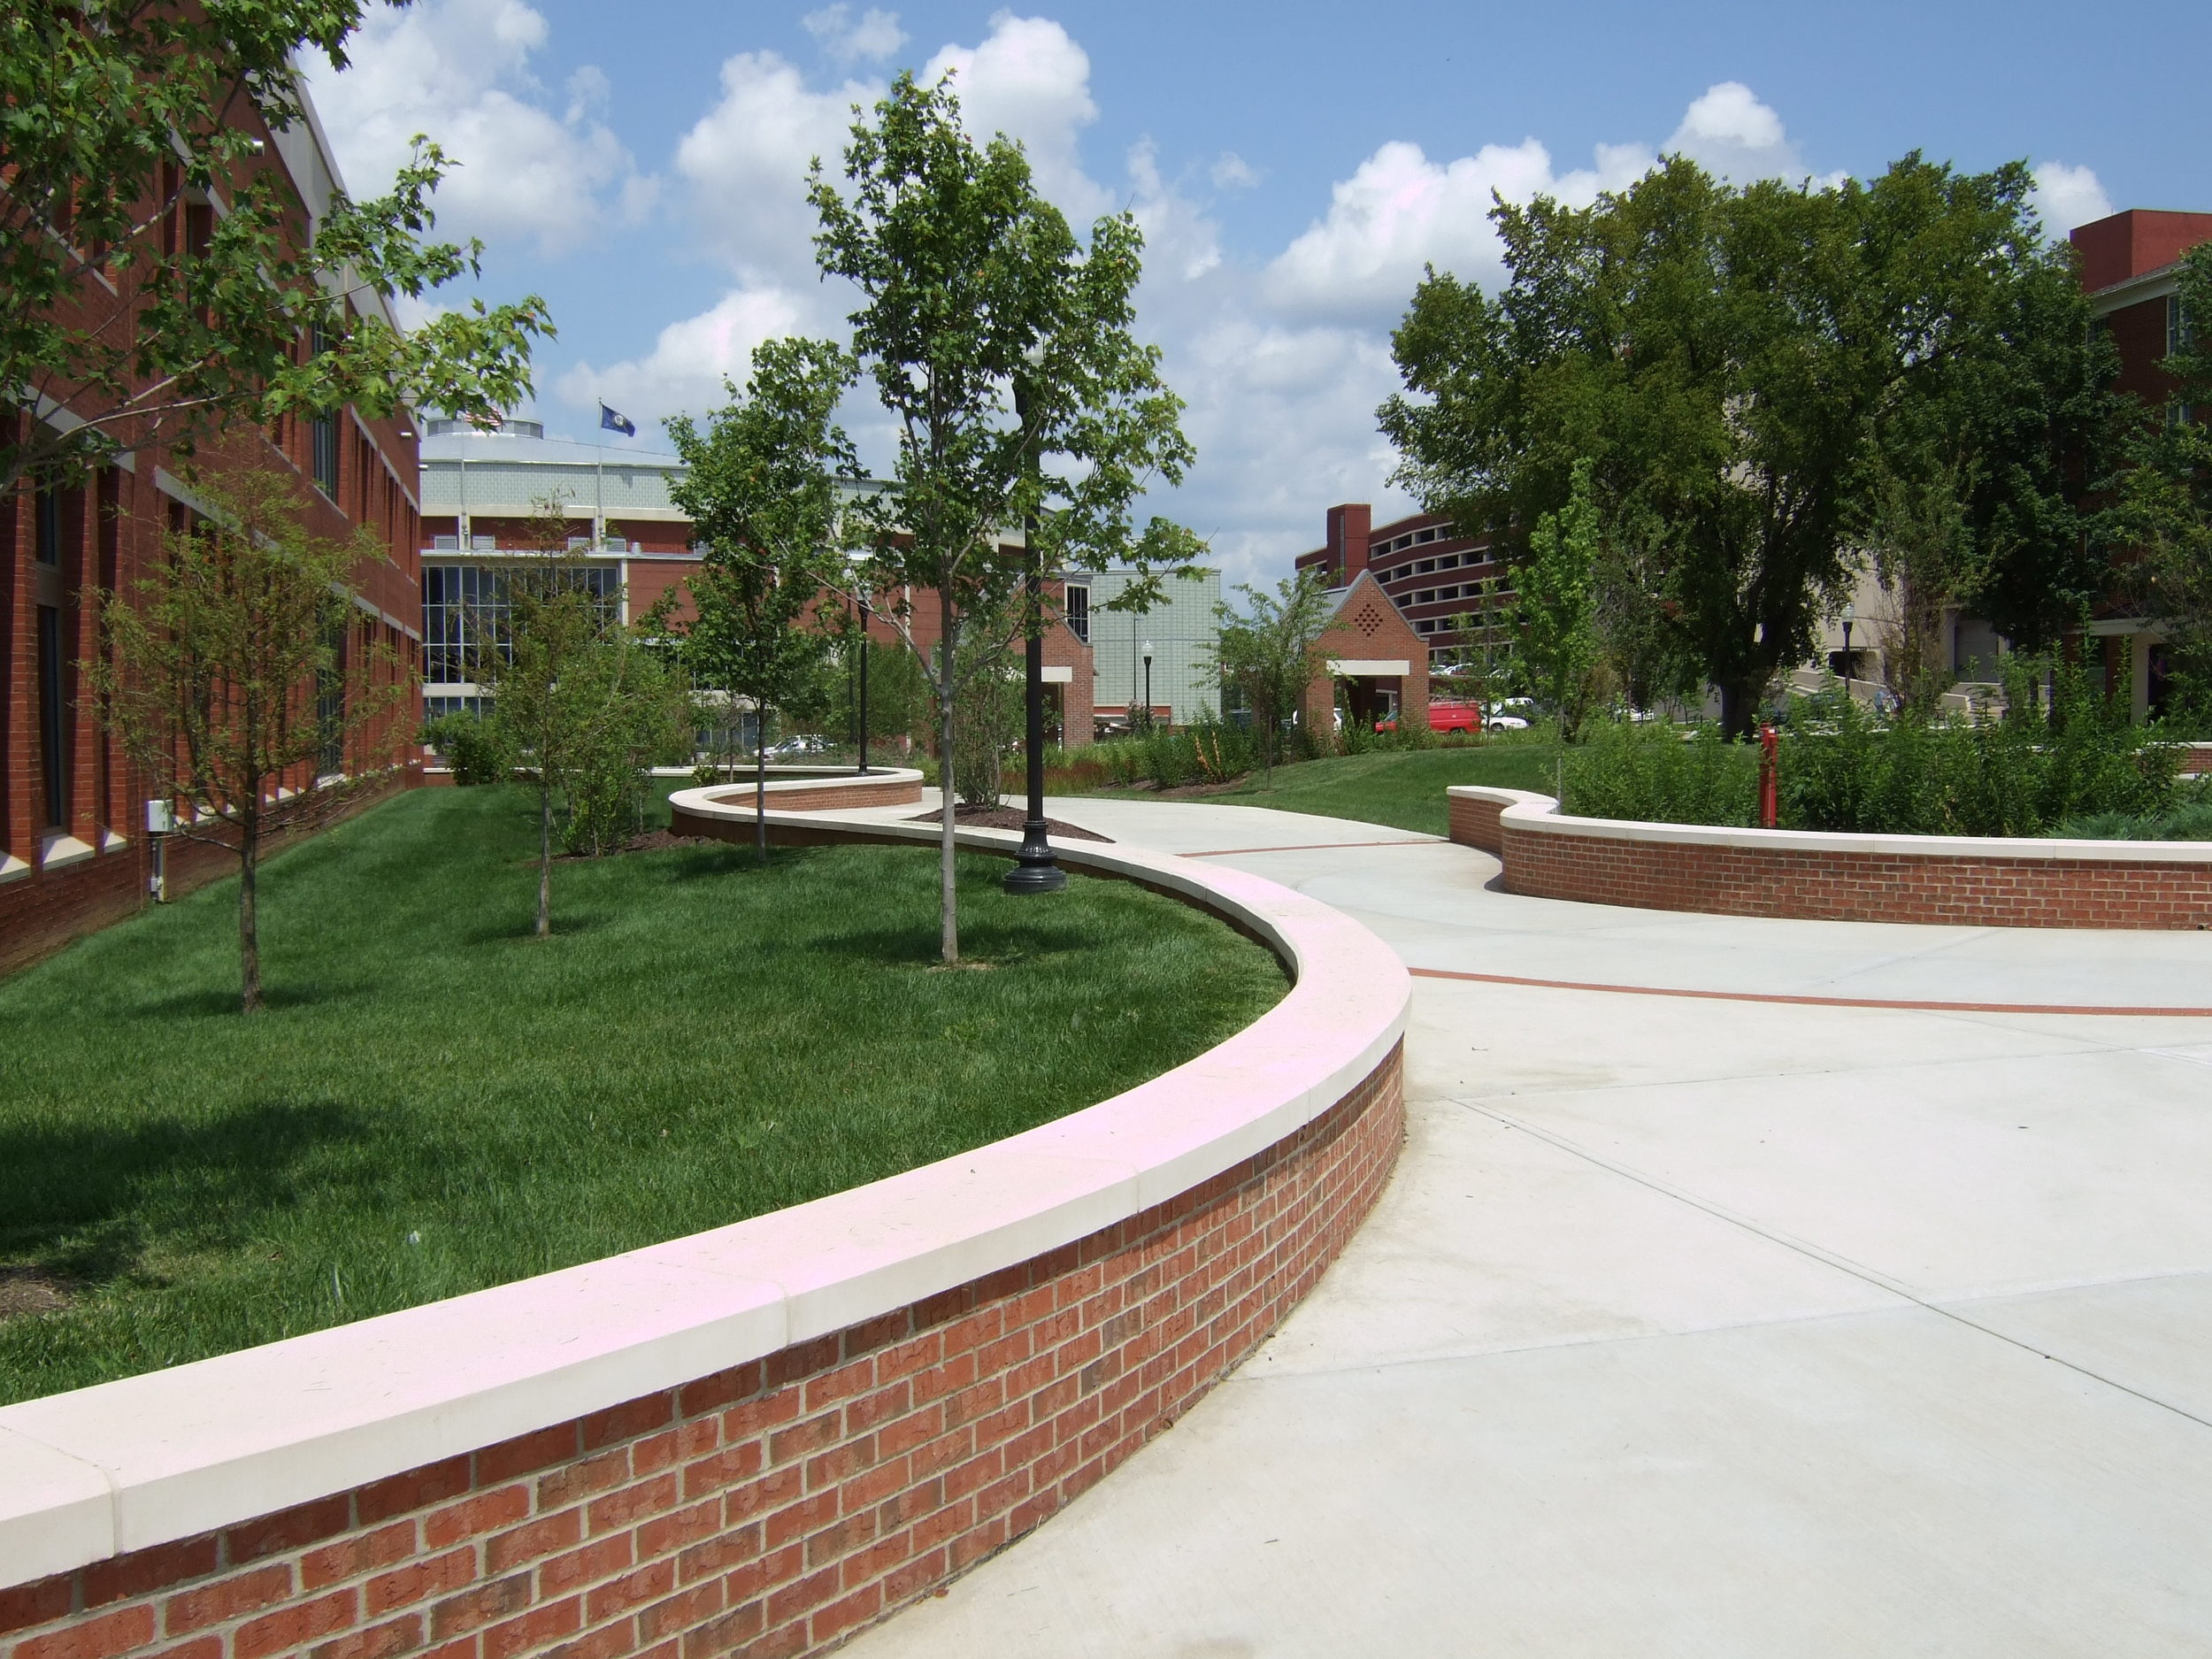 WKU Ped Mall Presentation Pictures (79).jpg